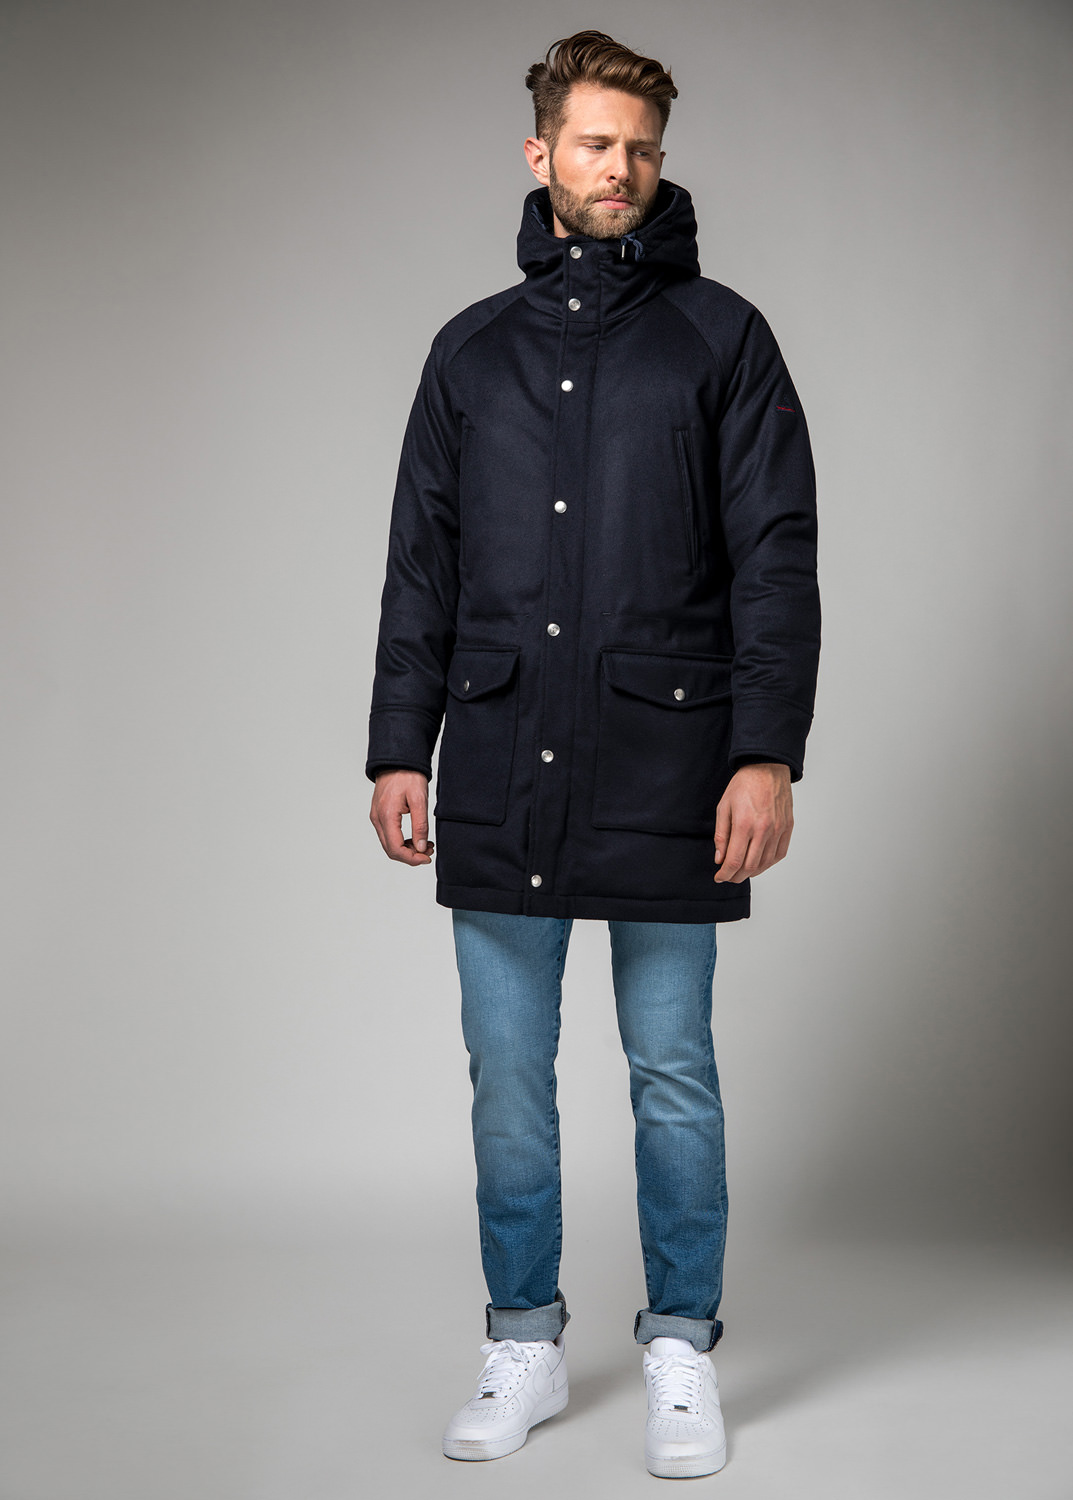 Deerhunter Deer Jacket-di torba